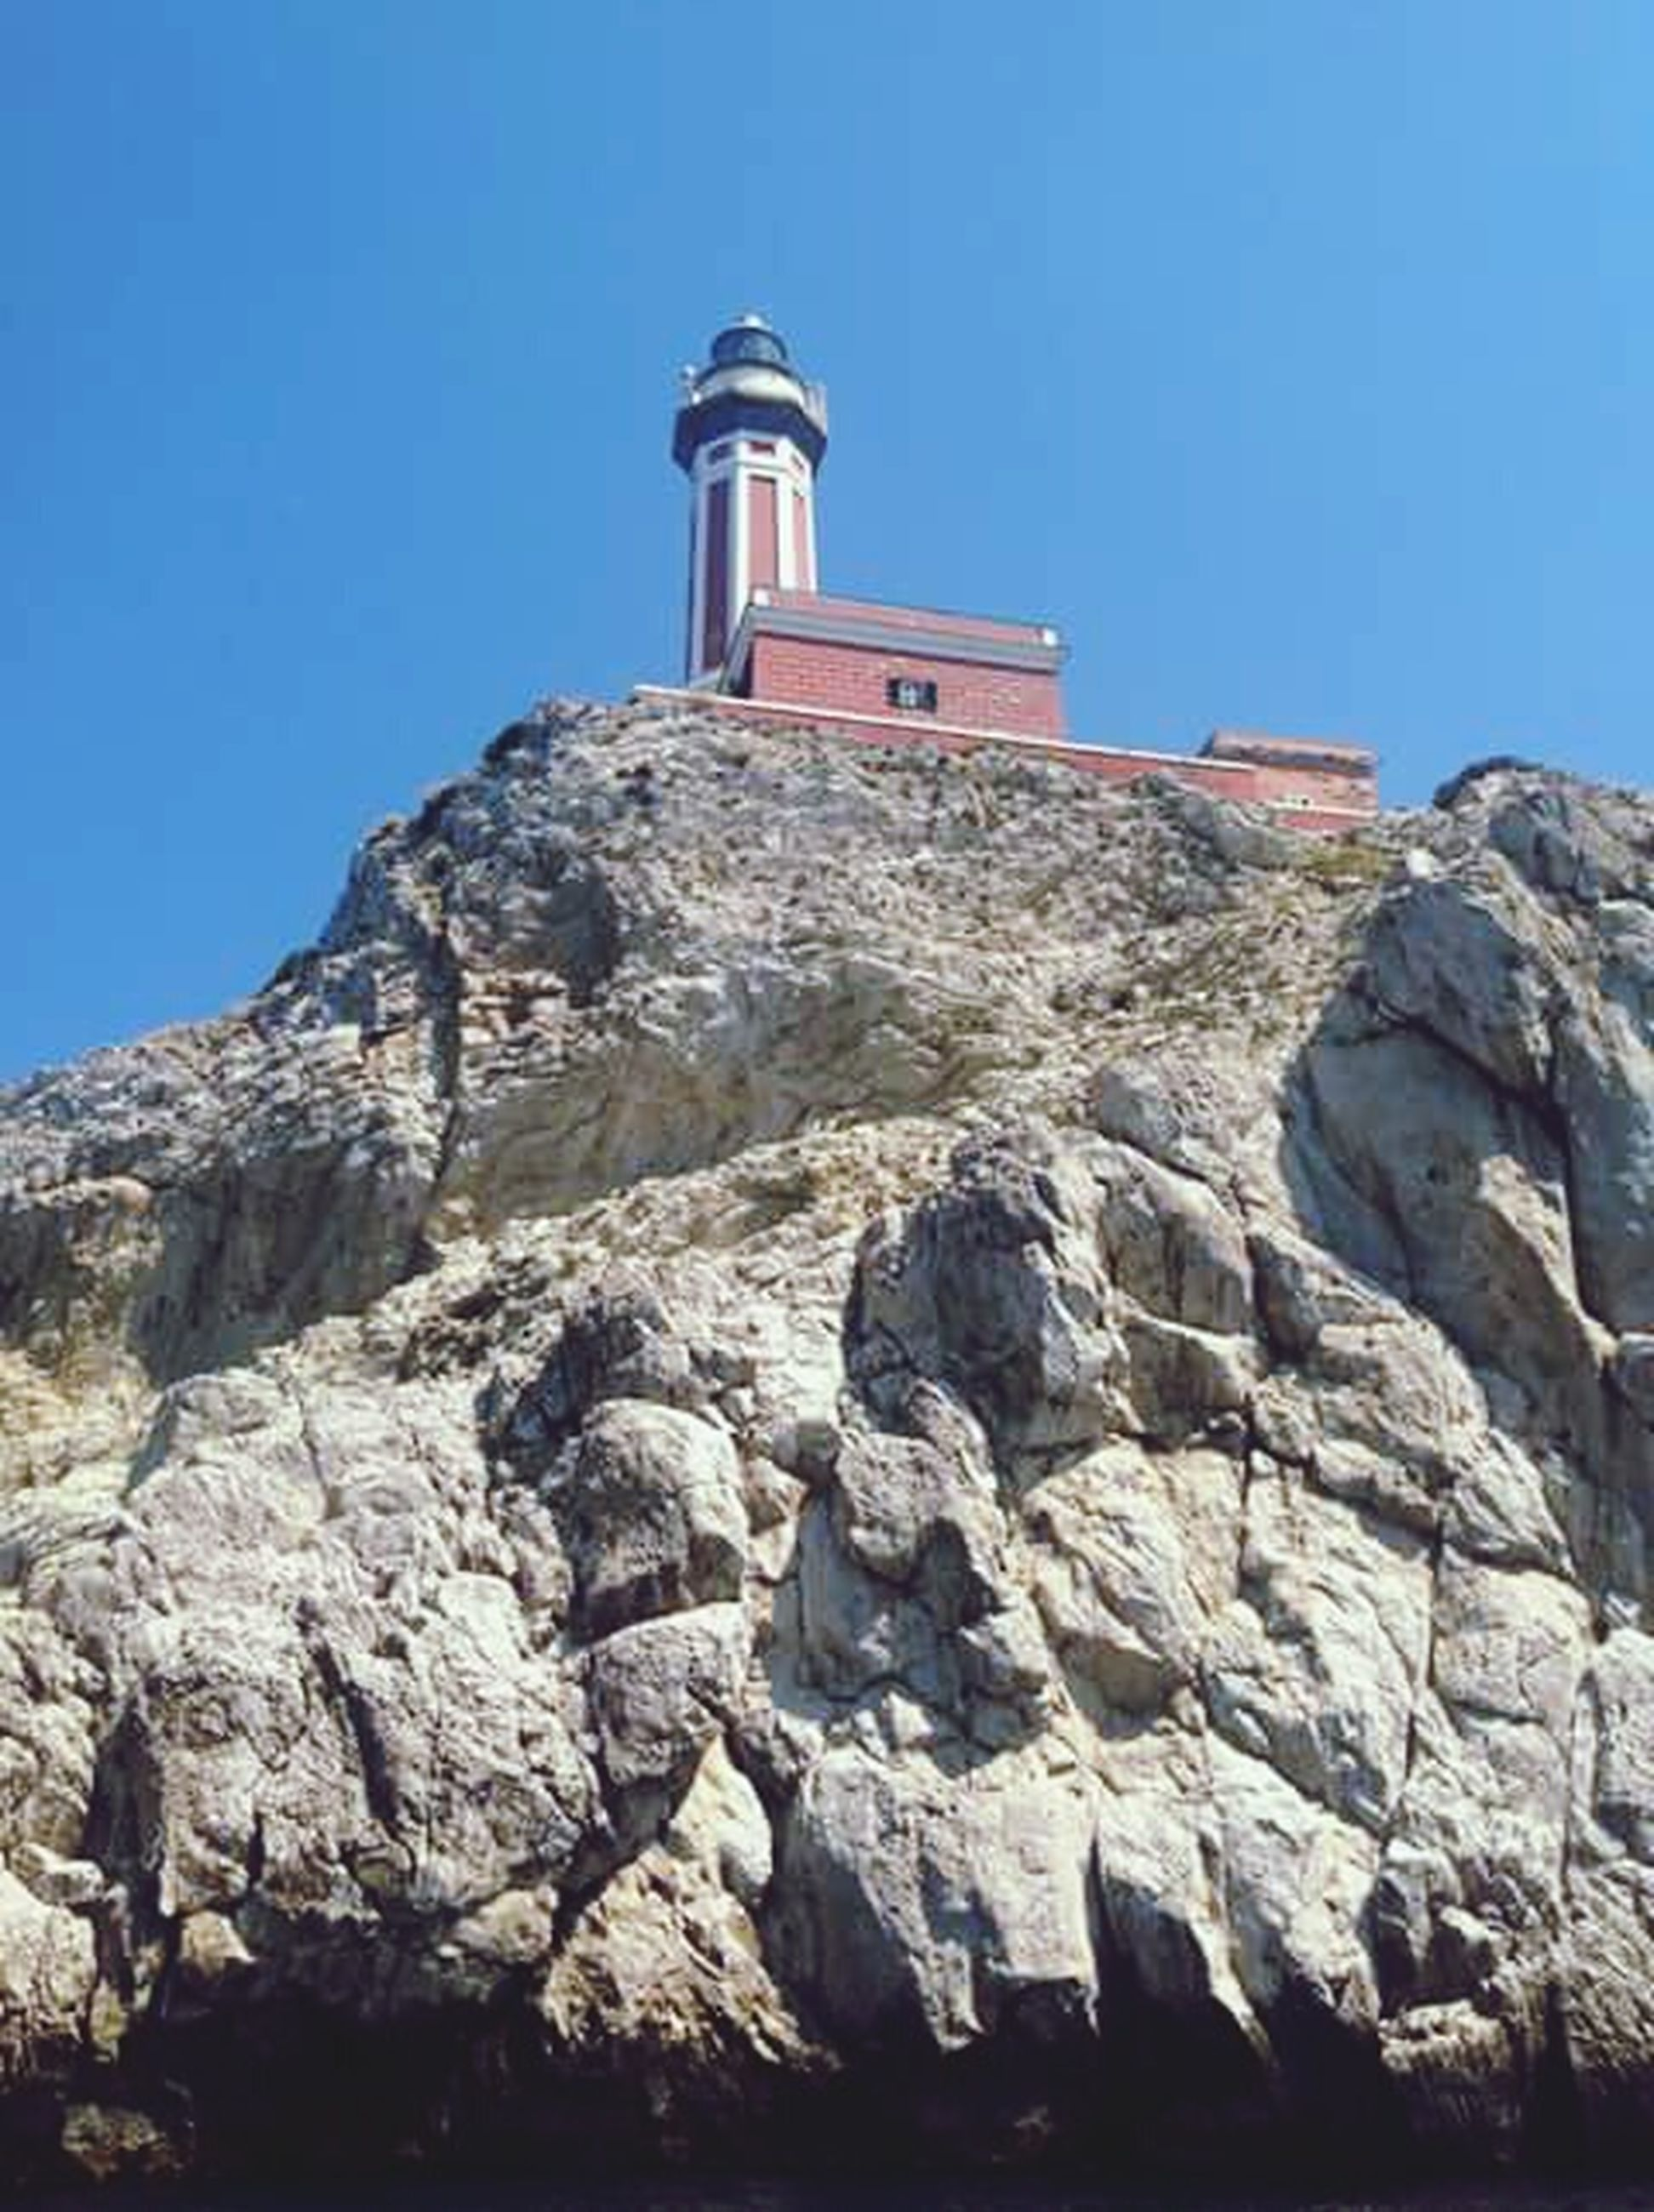 clear sky, built structure, architecture, building exterior, low angle view, blue, lighthouse, rock - object, copy space, guidance, sunlight, rock formation, stone wall, day, tower, rock, outdoors, nature, no people, mountain